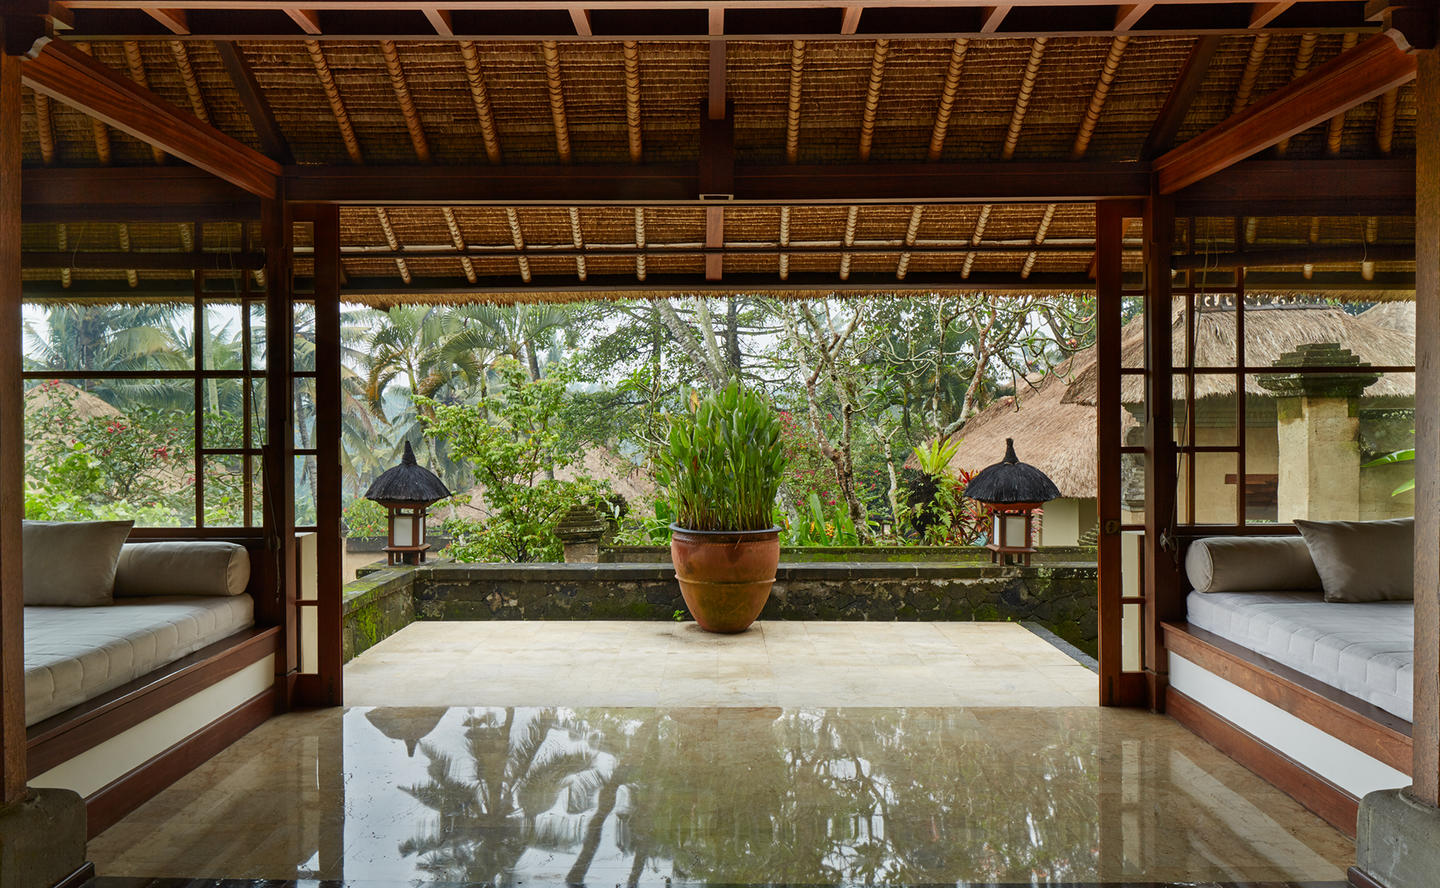 Courtyard, Village Suite - Amandari, Bali